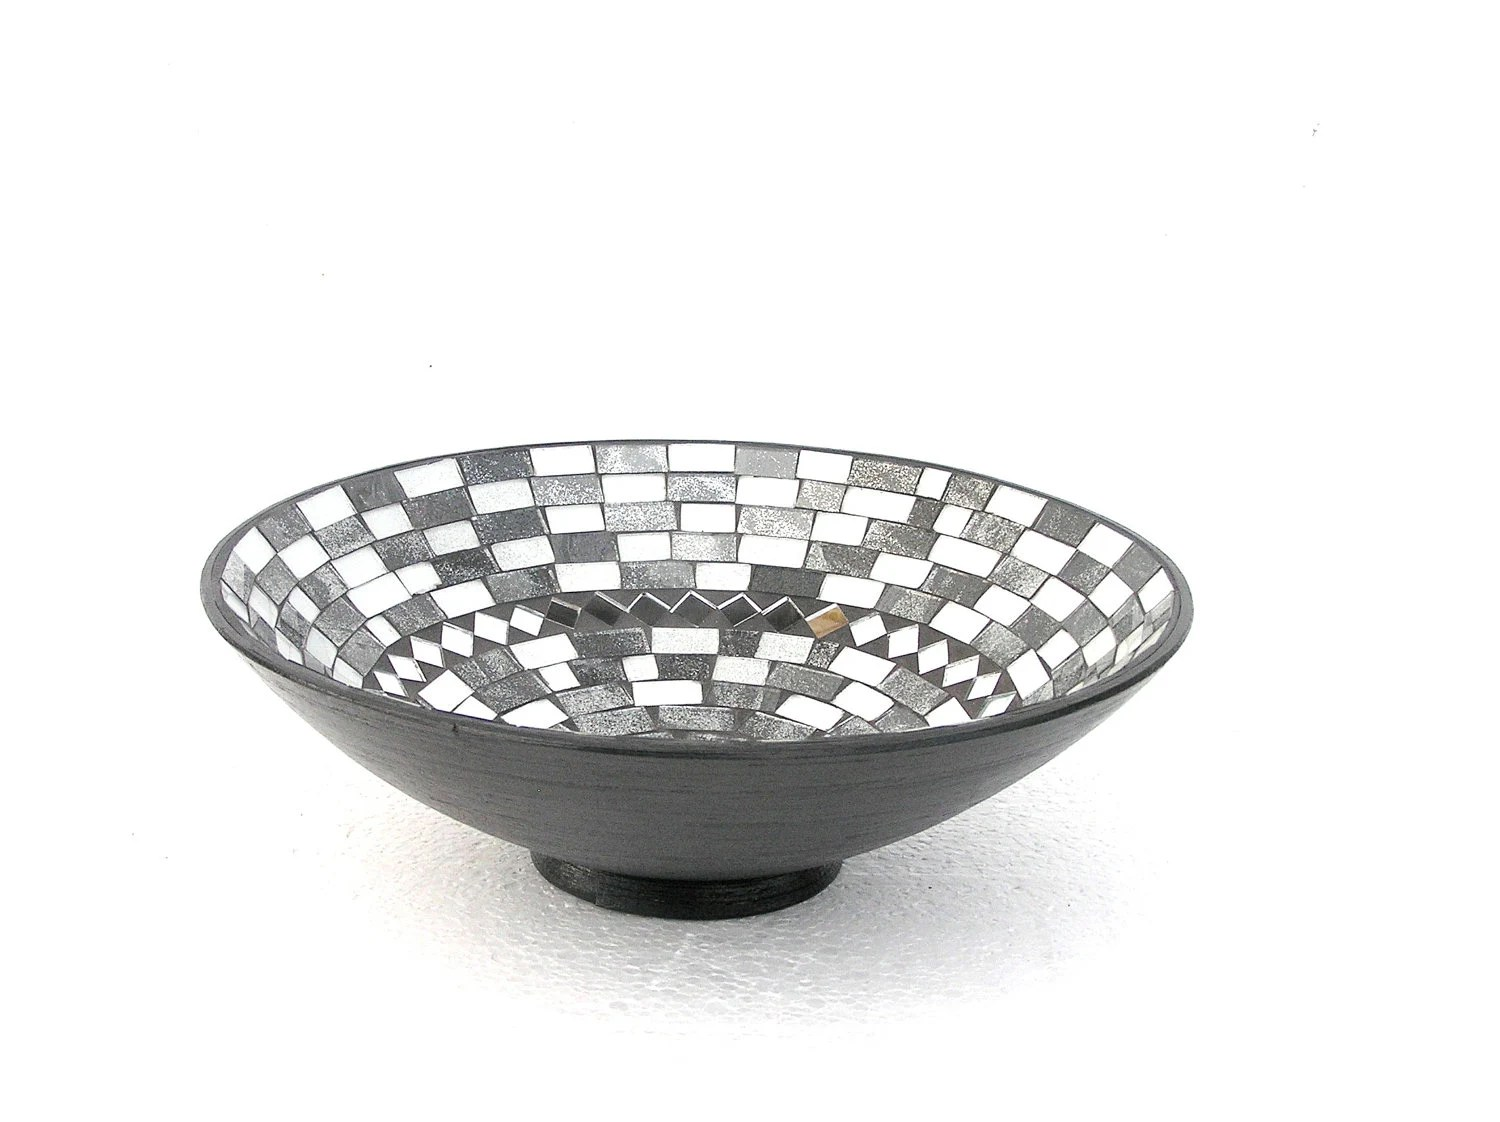 Black and white fruit bowl mosaic modern home decor classical